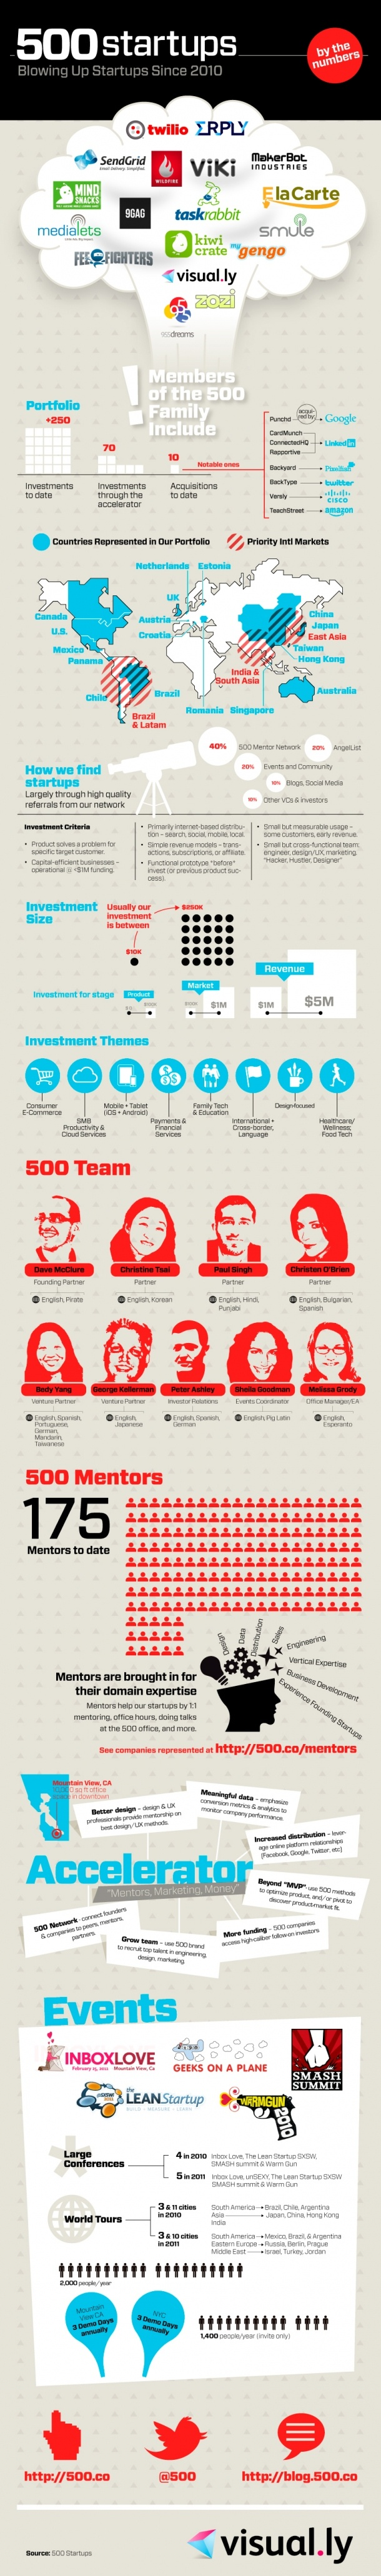 500 Startups By The Numbers: Blowing Up Startups Since 2010 [INFOGRAPHIC]